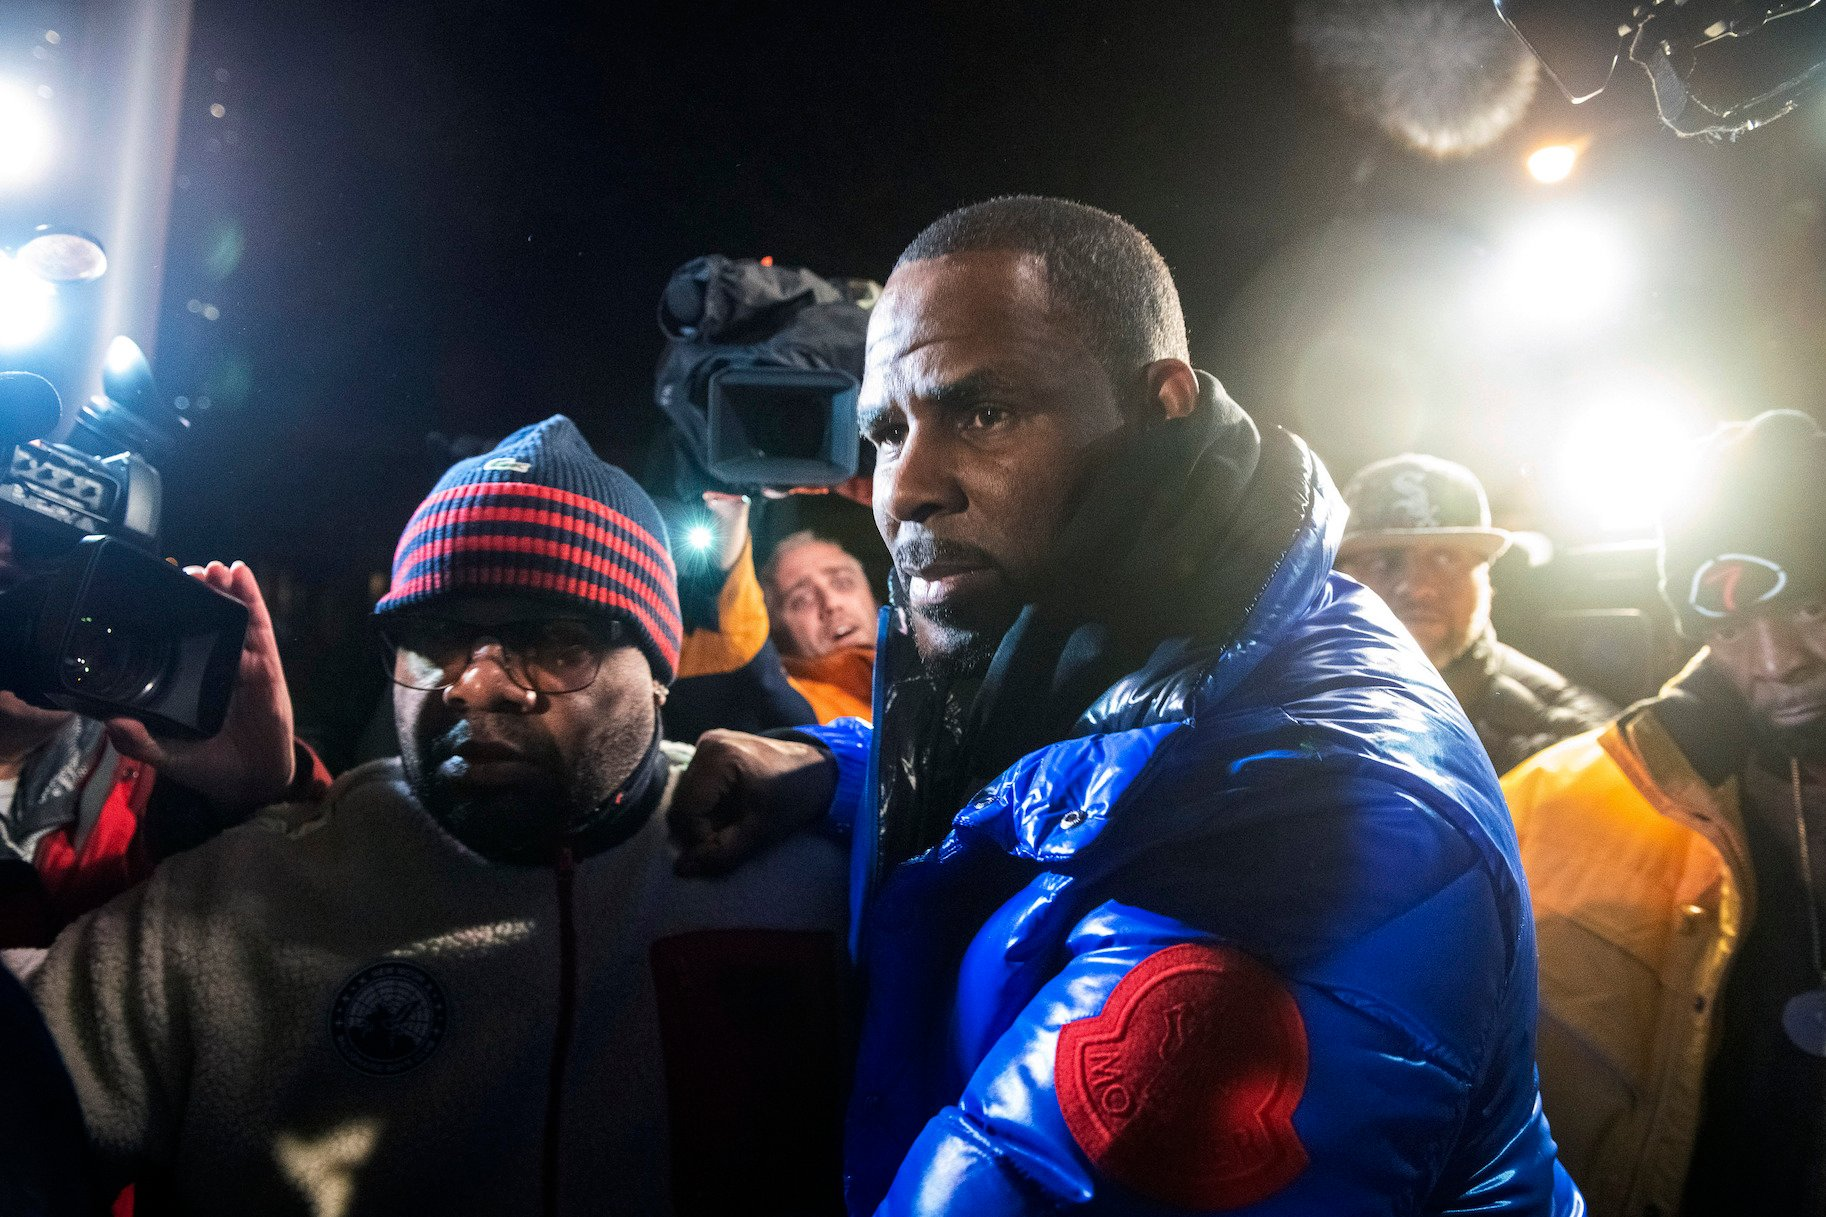 R. Kelly surrenders to authorities at Chicago First District police station on Friday, Feb. 22, 2019. (Tyler LaRiviere / Chicago Sun-Times via AP)